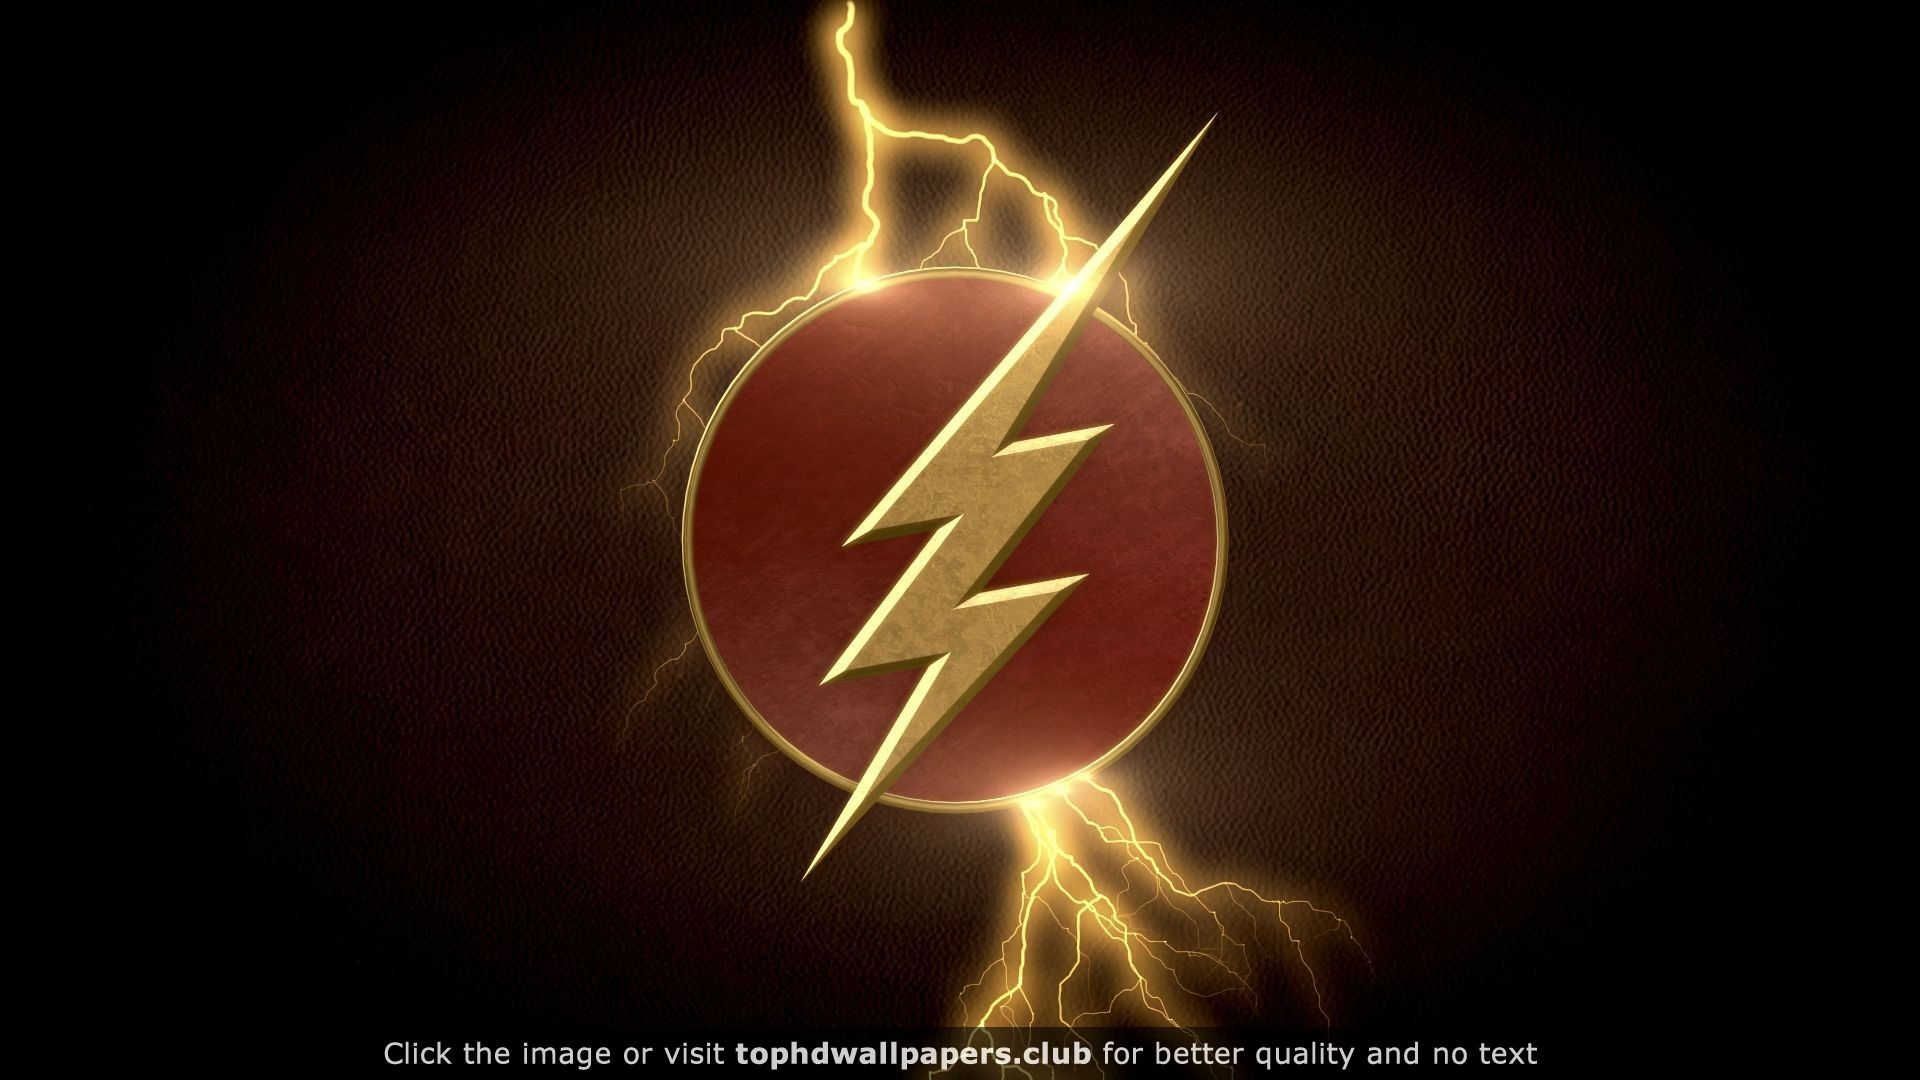 The Flash Hd Wallpaper For Your Pc Mac Or Mobile Device Desktop